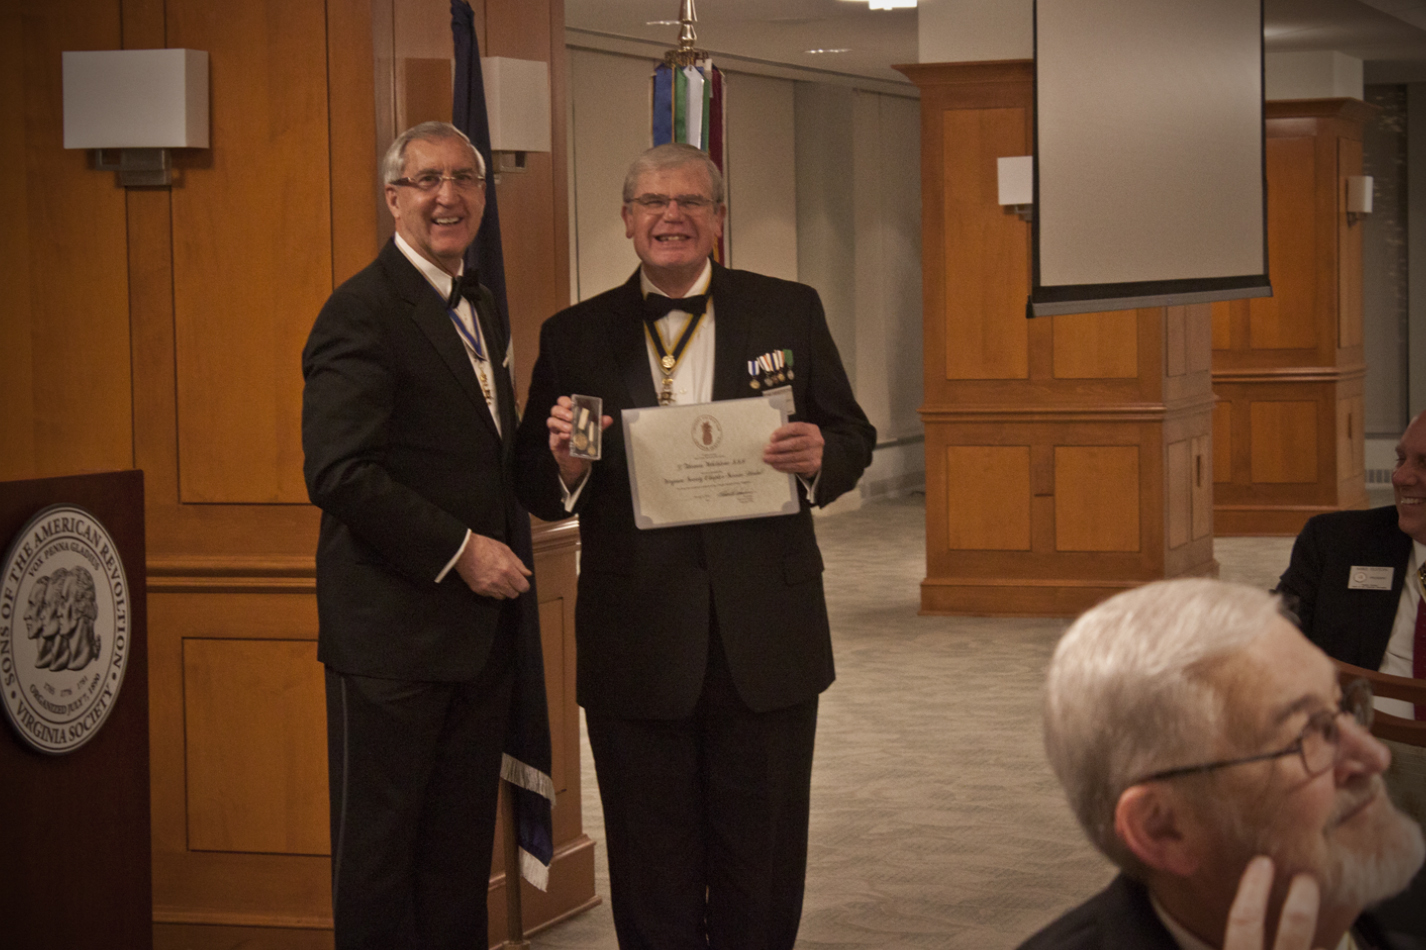 President Hawkins presents Past President Tom Whetstone with the Virginia Society Service Medal and Certificate